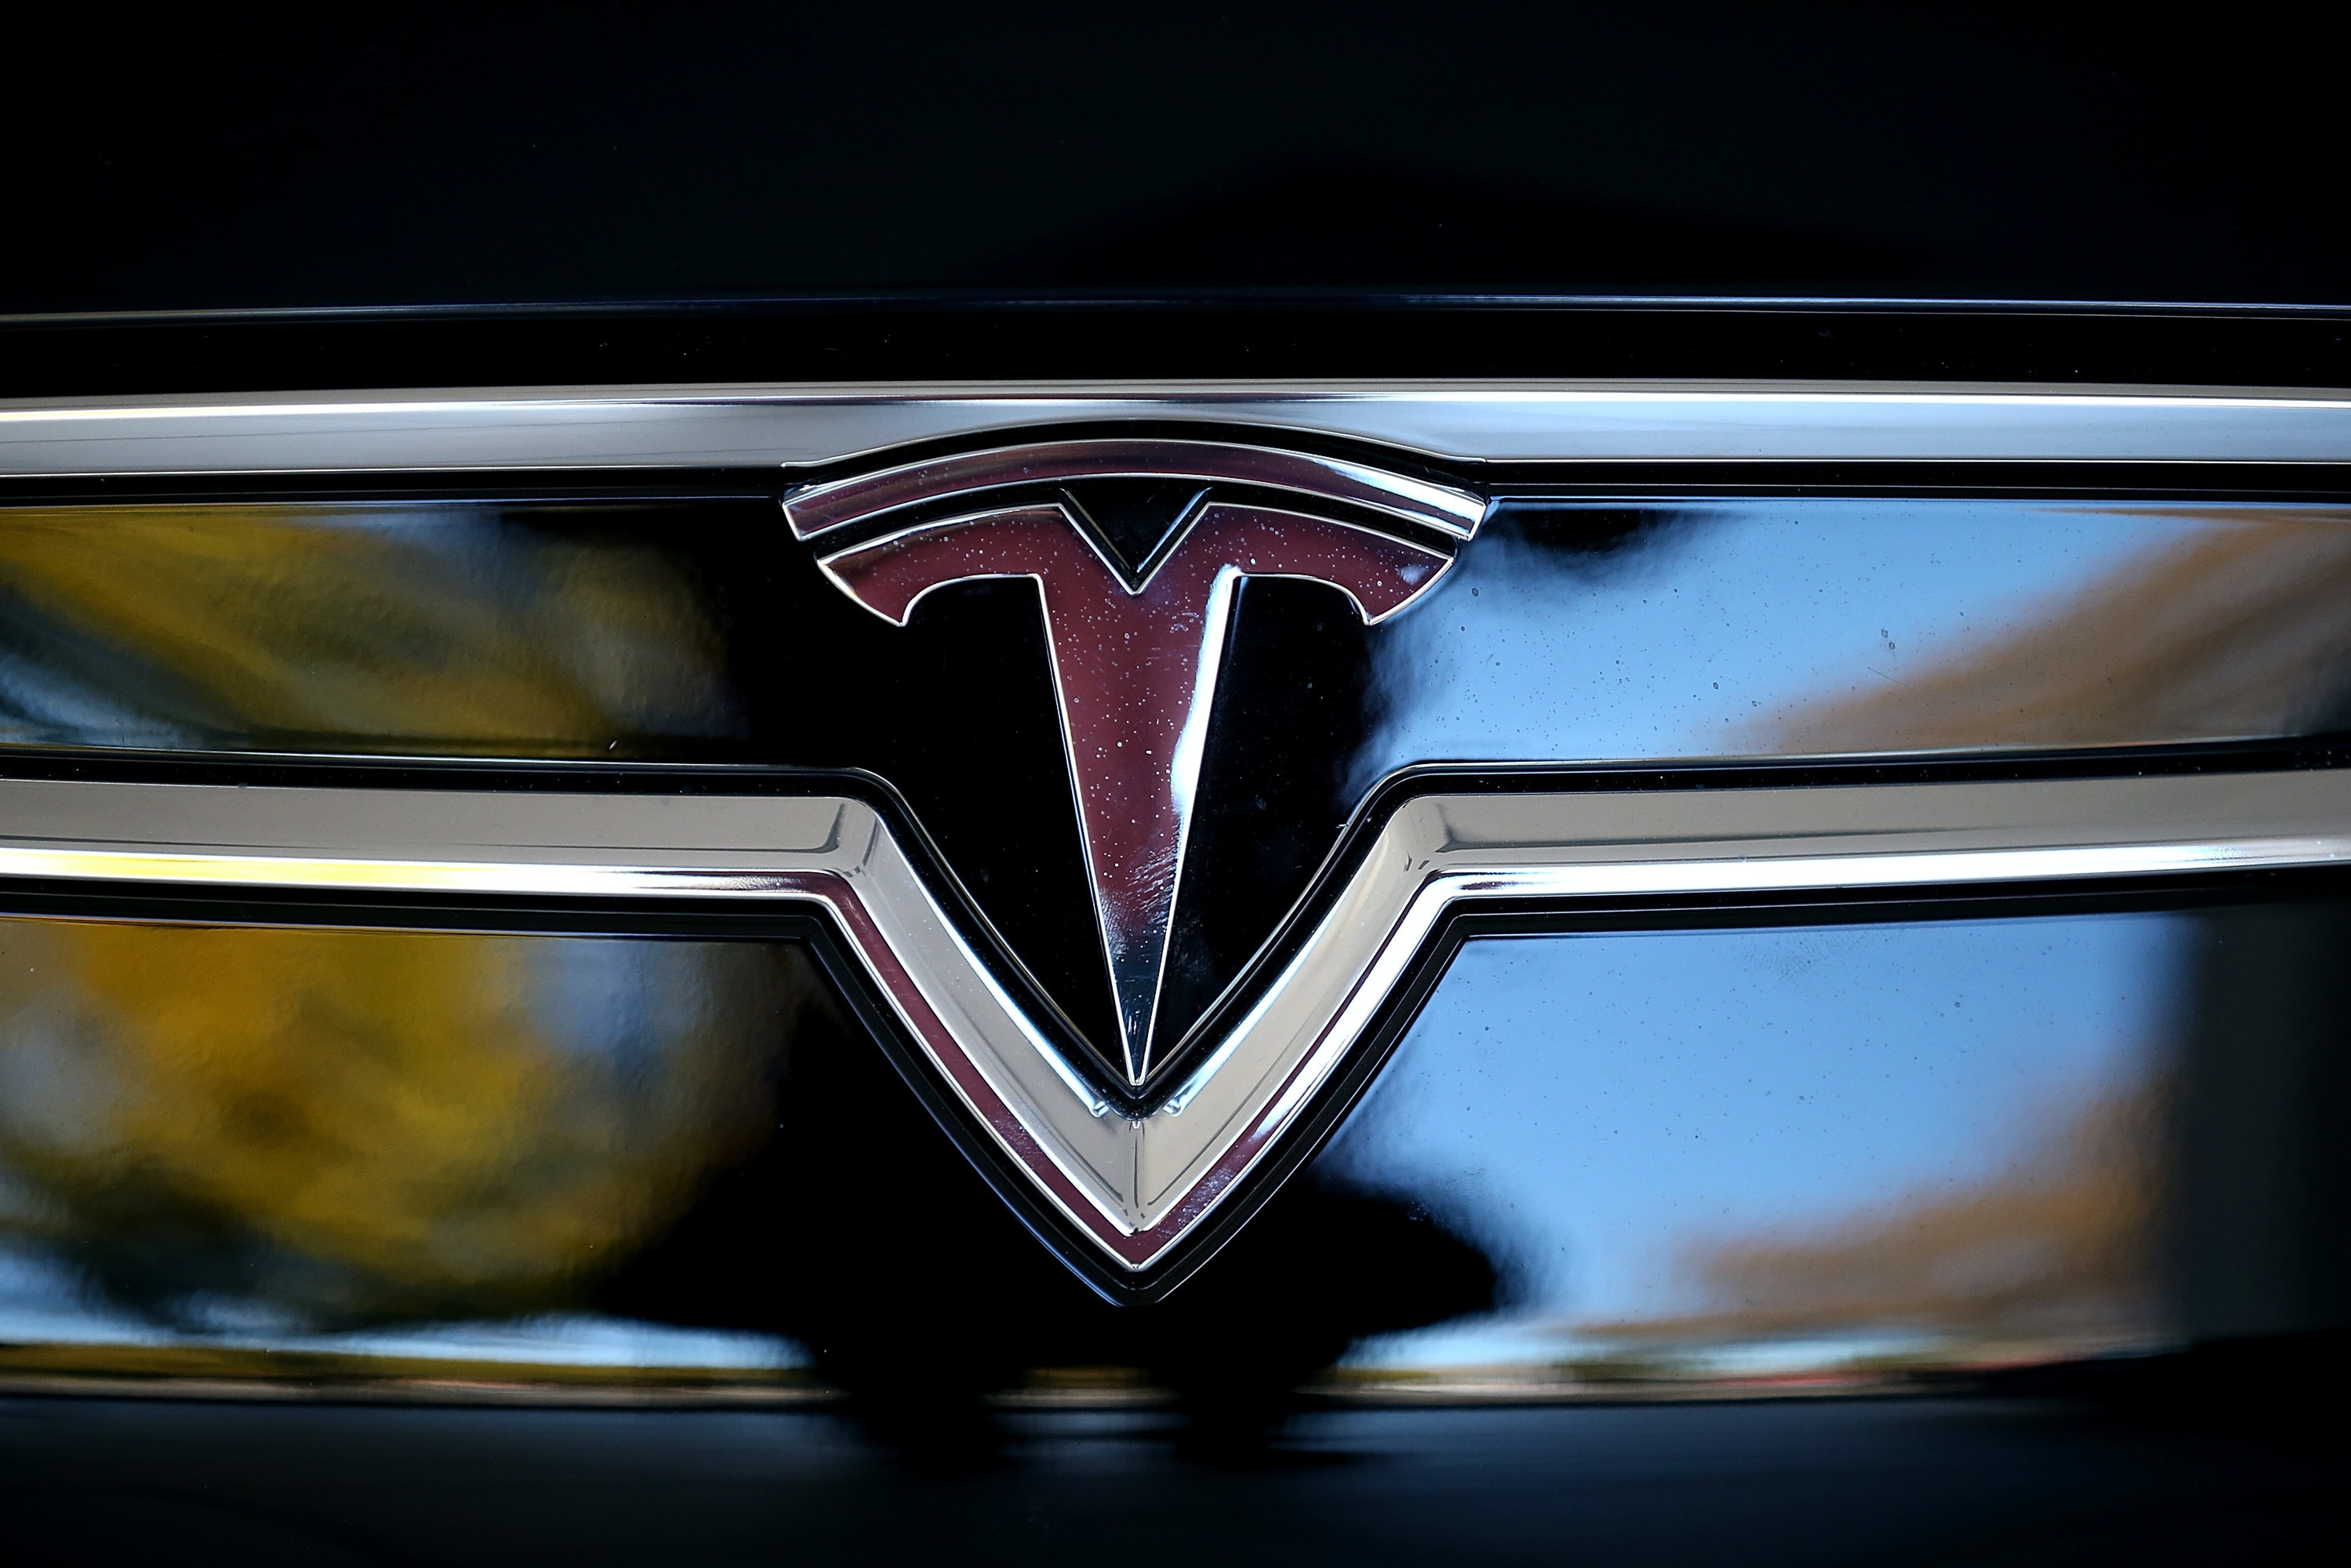 Here's what the Tesla logo looks like when it's not on an illegal drug.